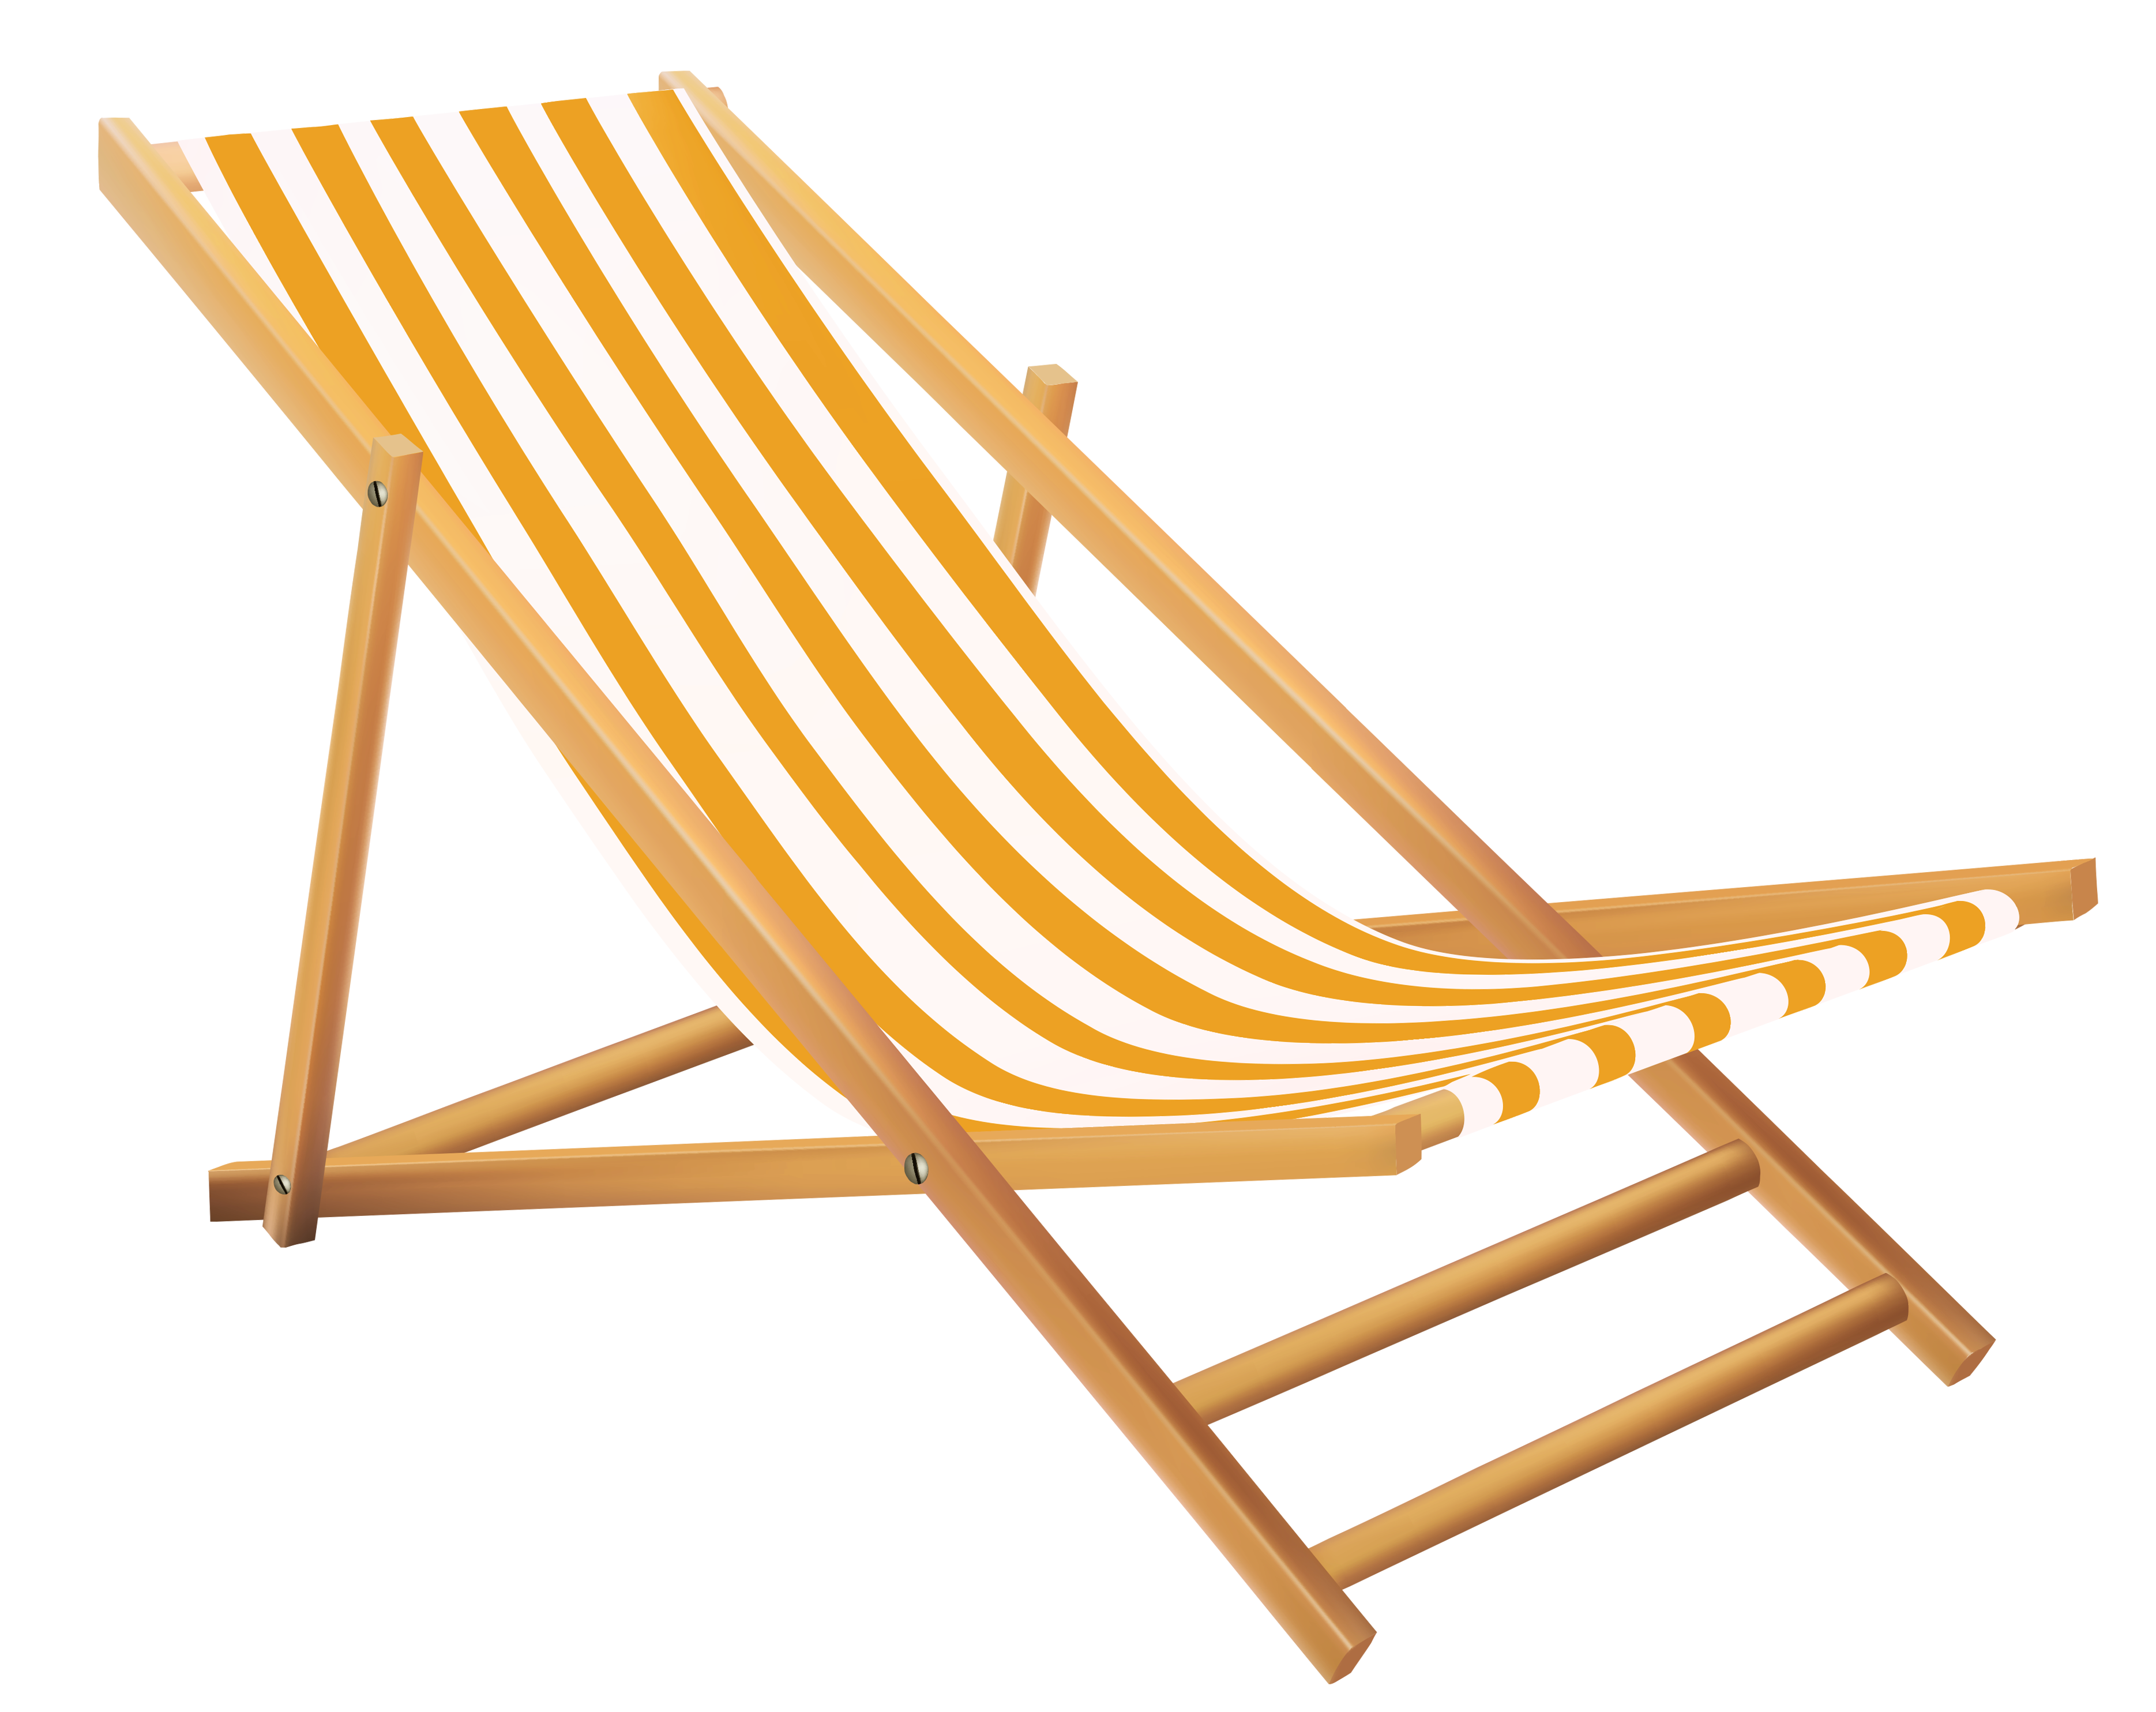 Vacation clipart beach chair Yopriceville Chair Gallery  Lounge